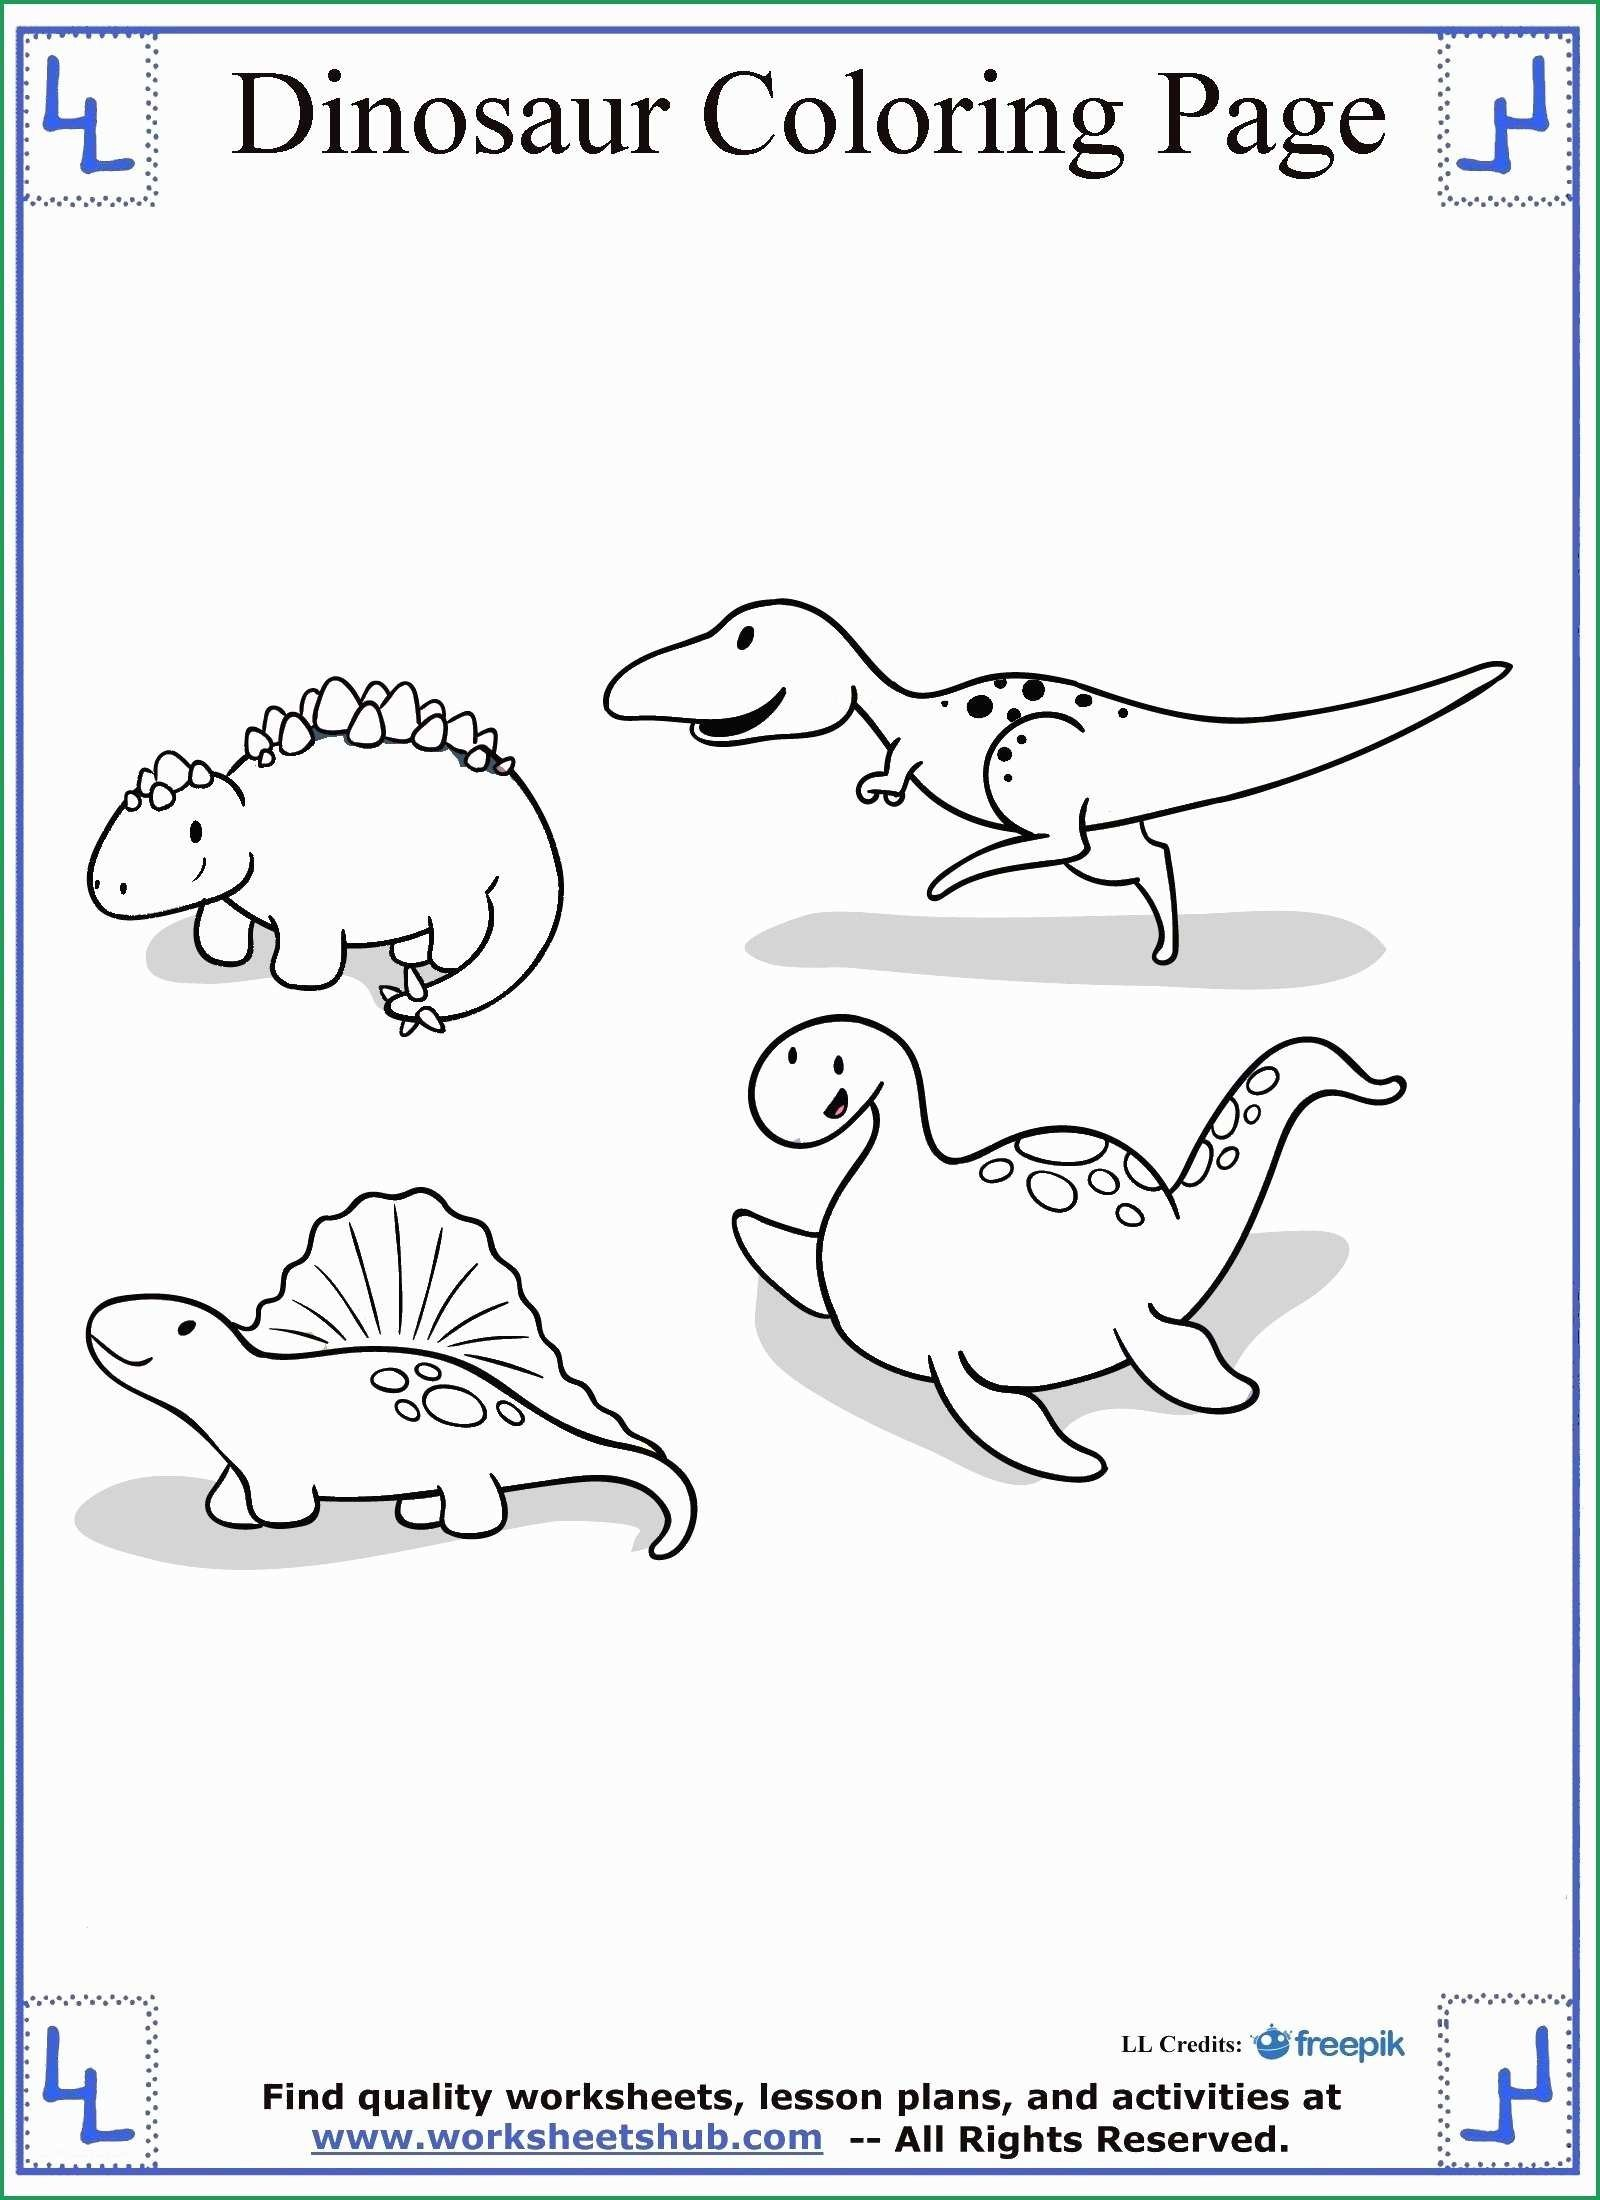 Dinosaur Coloring Page Printable Dinosaur Coloring Pages Pdf Best Of Dinosaur Coloring